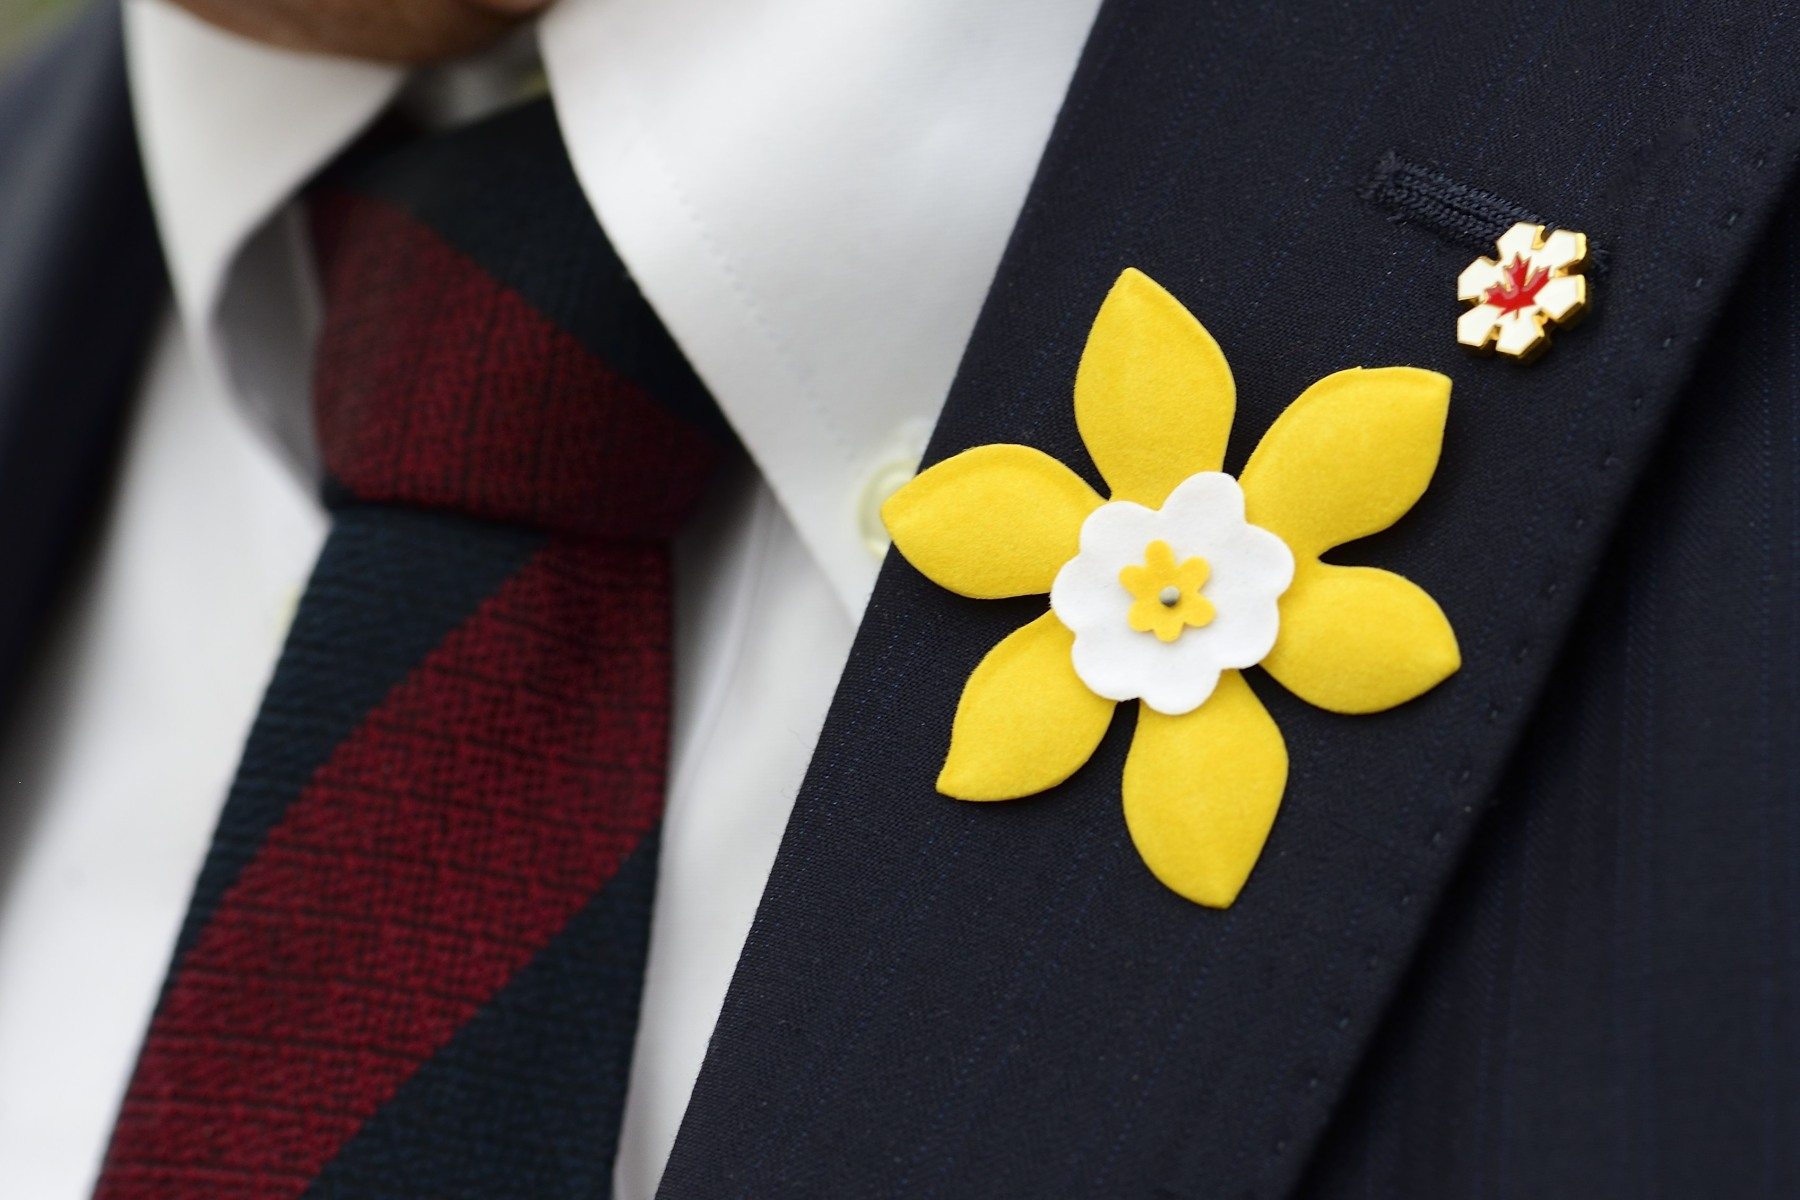 During Daffodil Month, held every April, Canadians are encouraged to join the fight against cancer. Across the country, Canadian Cancer Society volunteers will be selling bright yellow daffodil pins, as well as fresh daffodils, which symbolize strength and courage in the fight against cancer. By wearing the pin throughout the month of April, Canadians can show their support for people living with cancer.